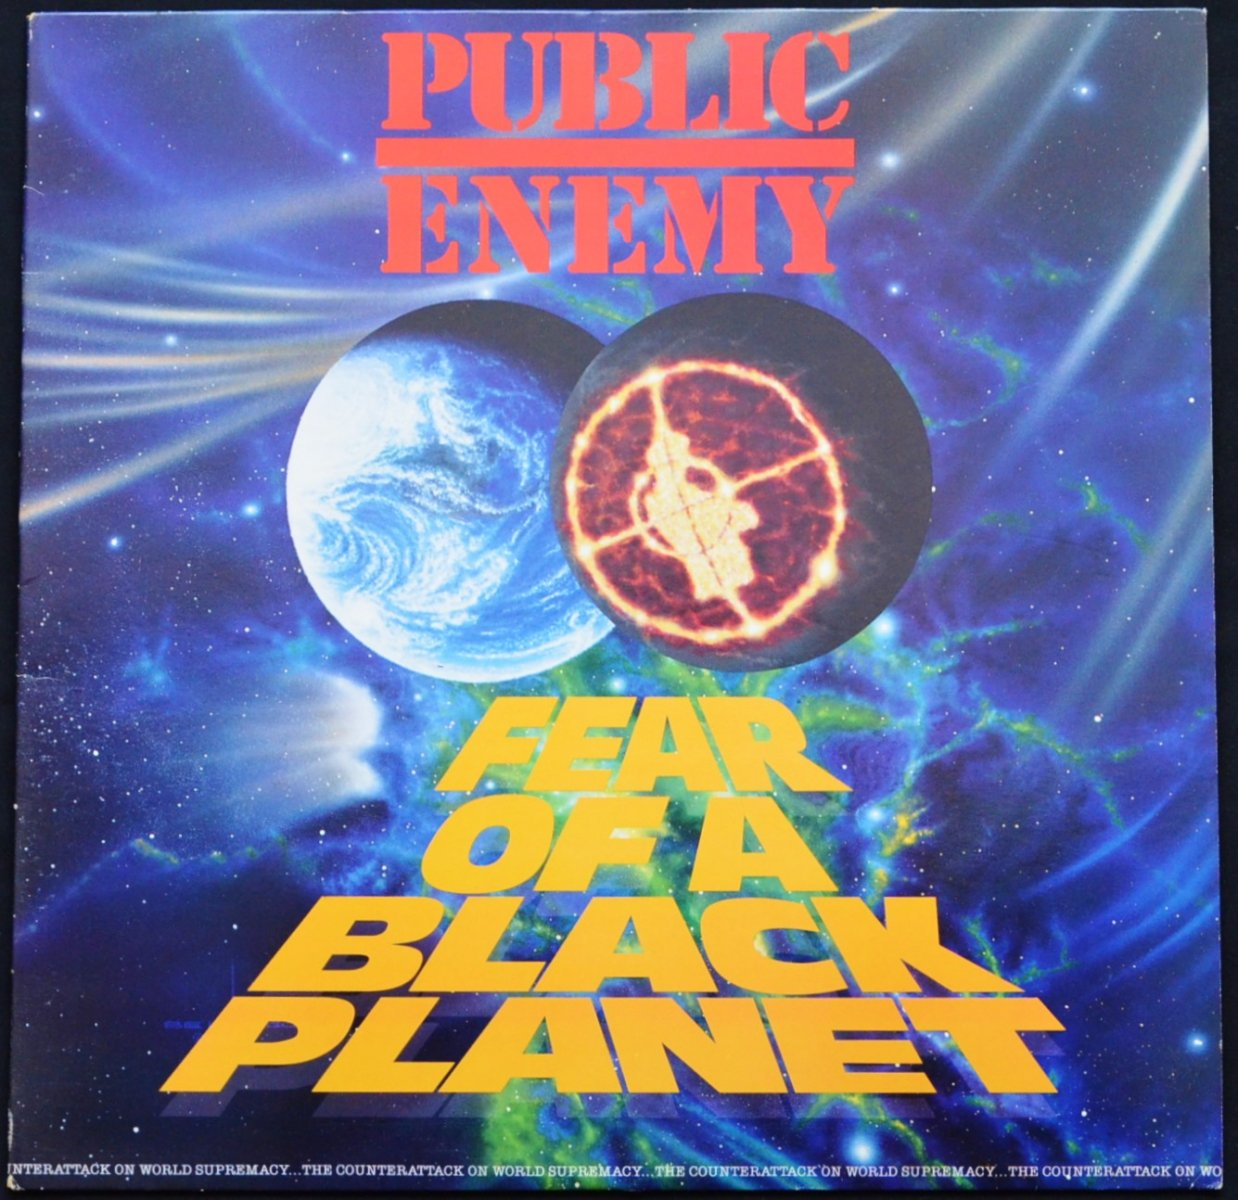 PUBLIC ENEMY / FEAR OF A BLACK PLANET (1LP)